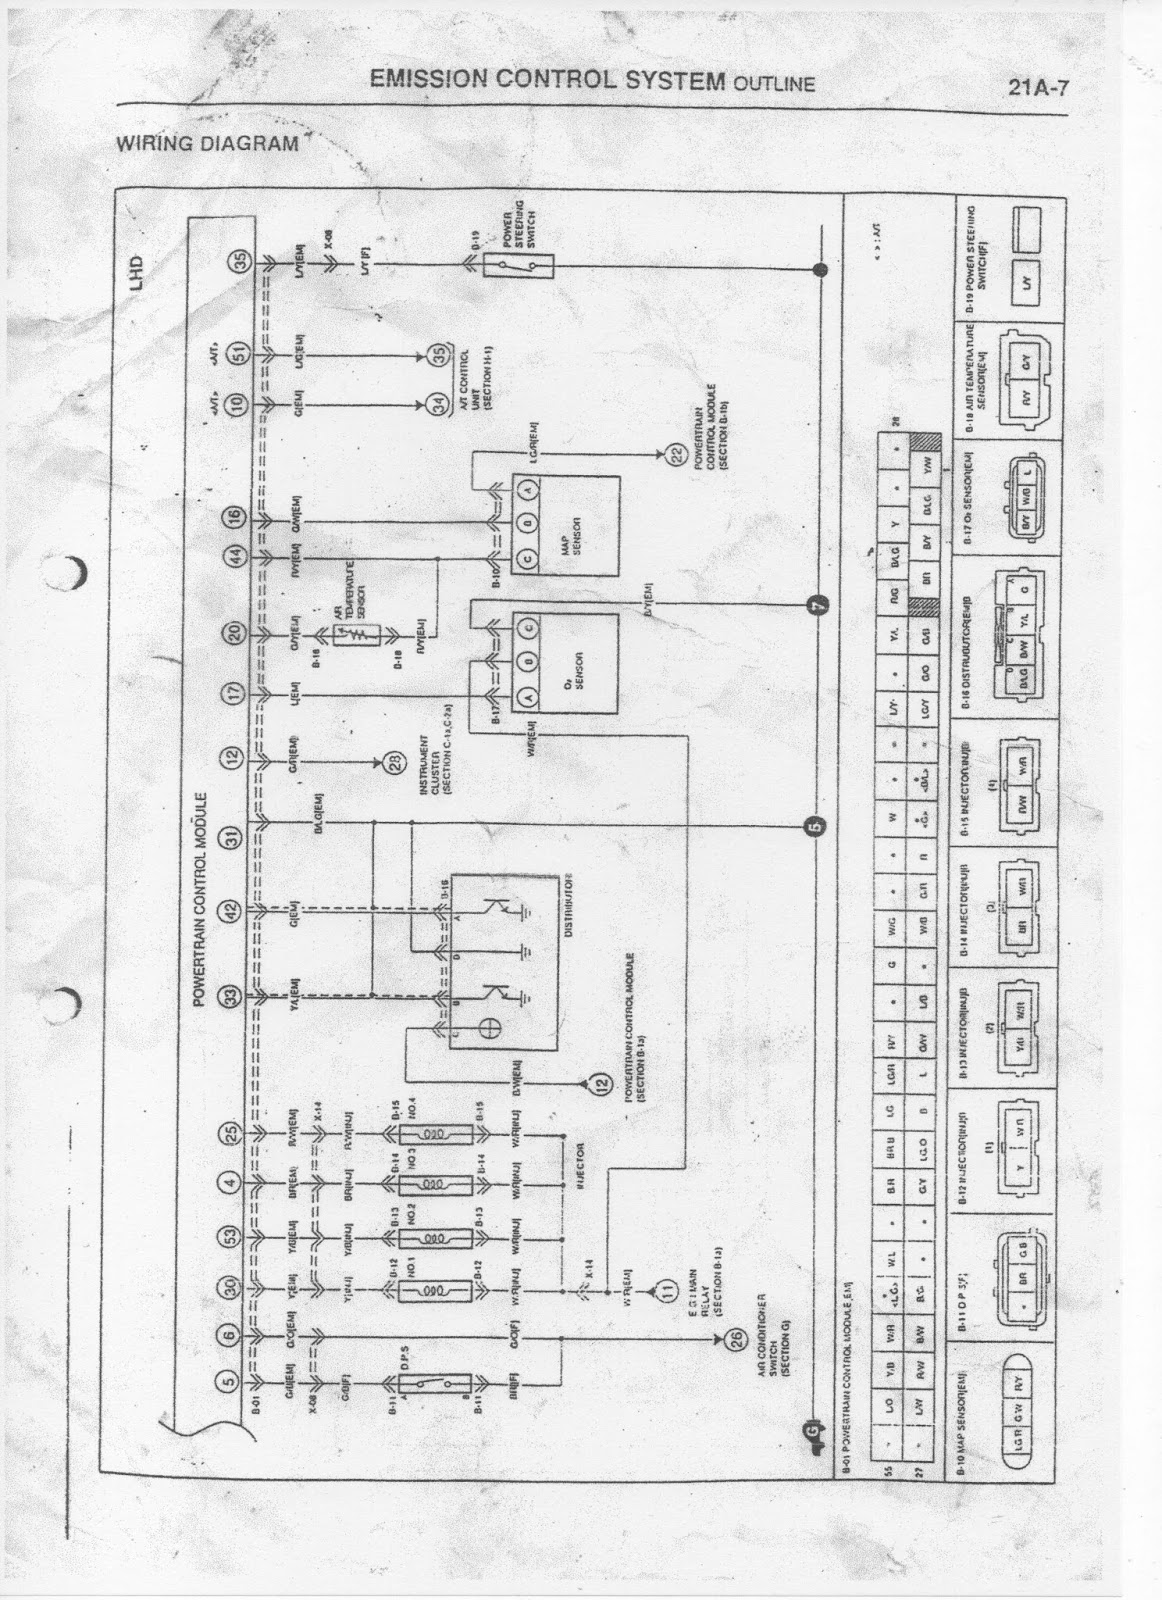 Pleasant Electricalcircuitdiagramshomeacwiringdiagramhomeelectrical Basic Wiring Digital Resources Indicompassionincorg